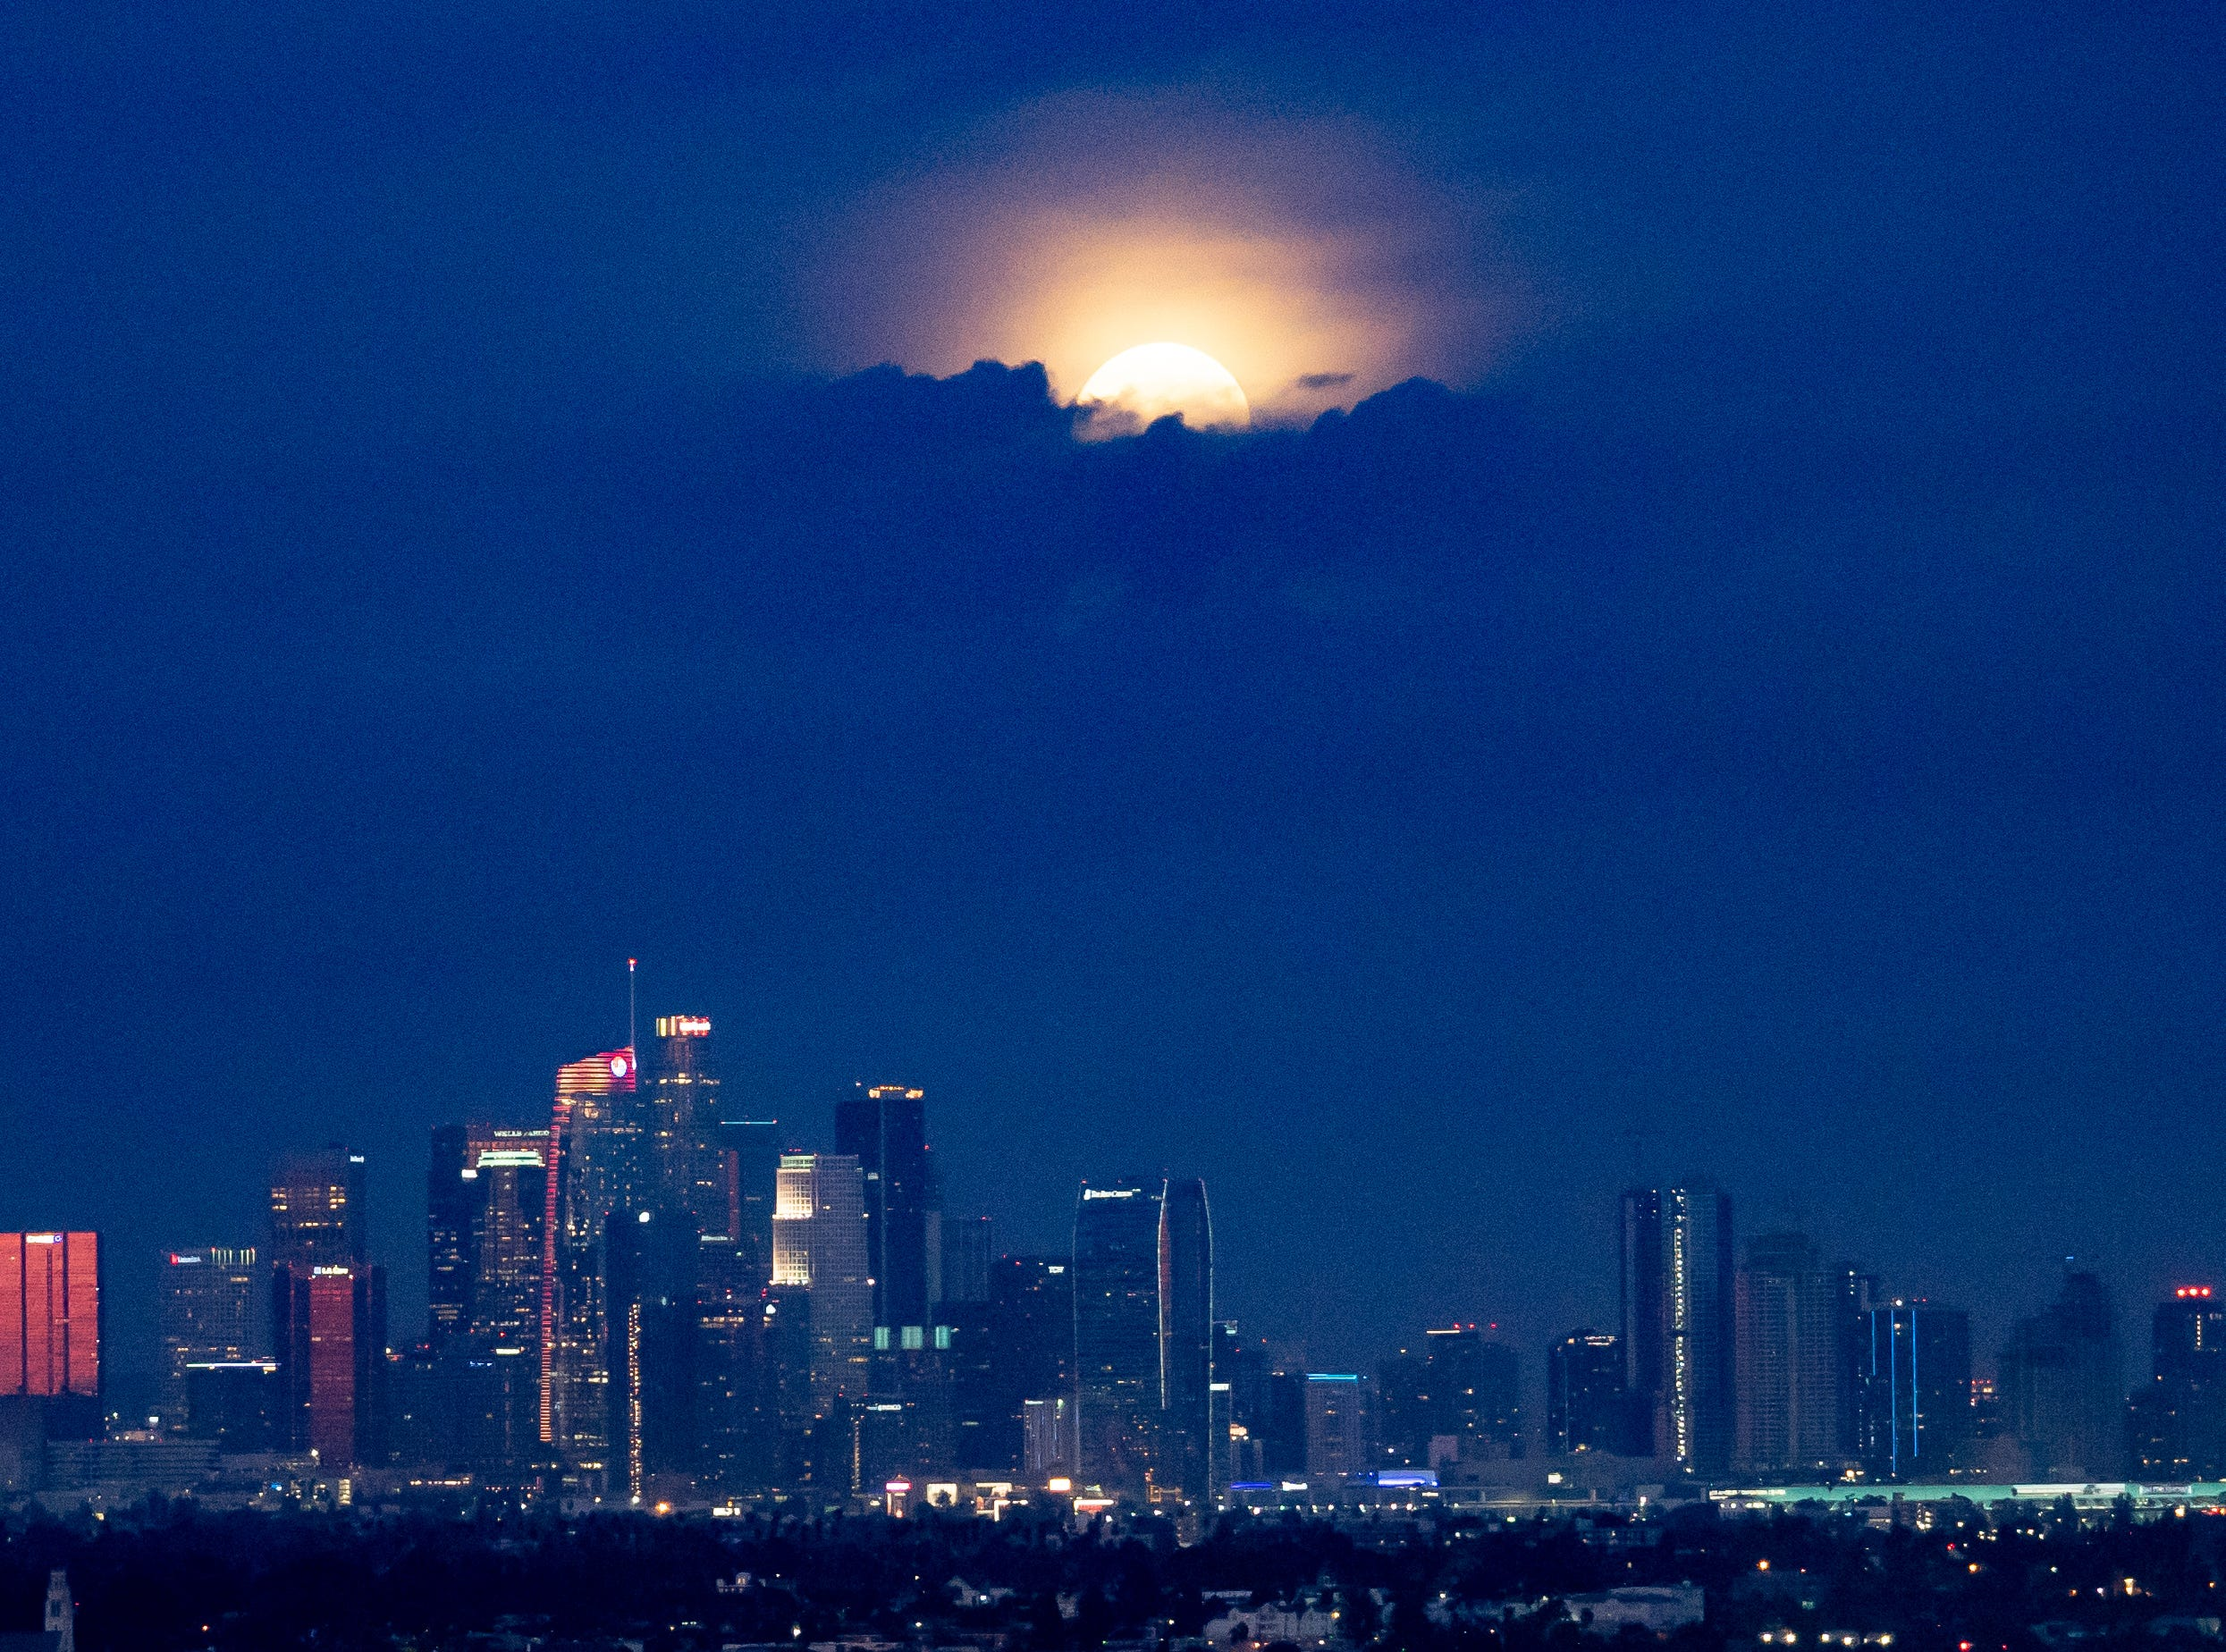 The Los Angeles downtown, with a full moon peeking through the clouds